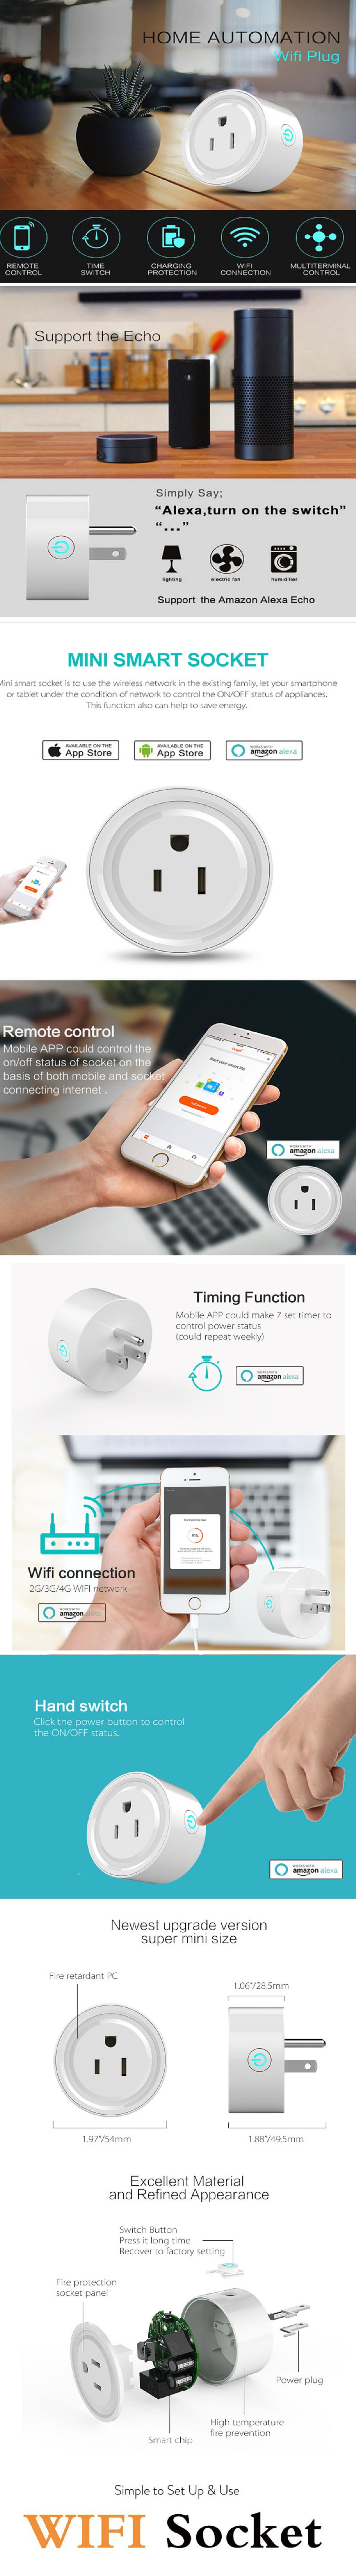 Best New Wifi Smart Power Socket Strip Supply Plug With Australian Dual 3 Pin Socketoutlet Construction Wireless Outlet Mini Work Amazon Alexa No Hub Required Remote Control By Phone Timing Function From Anywhere